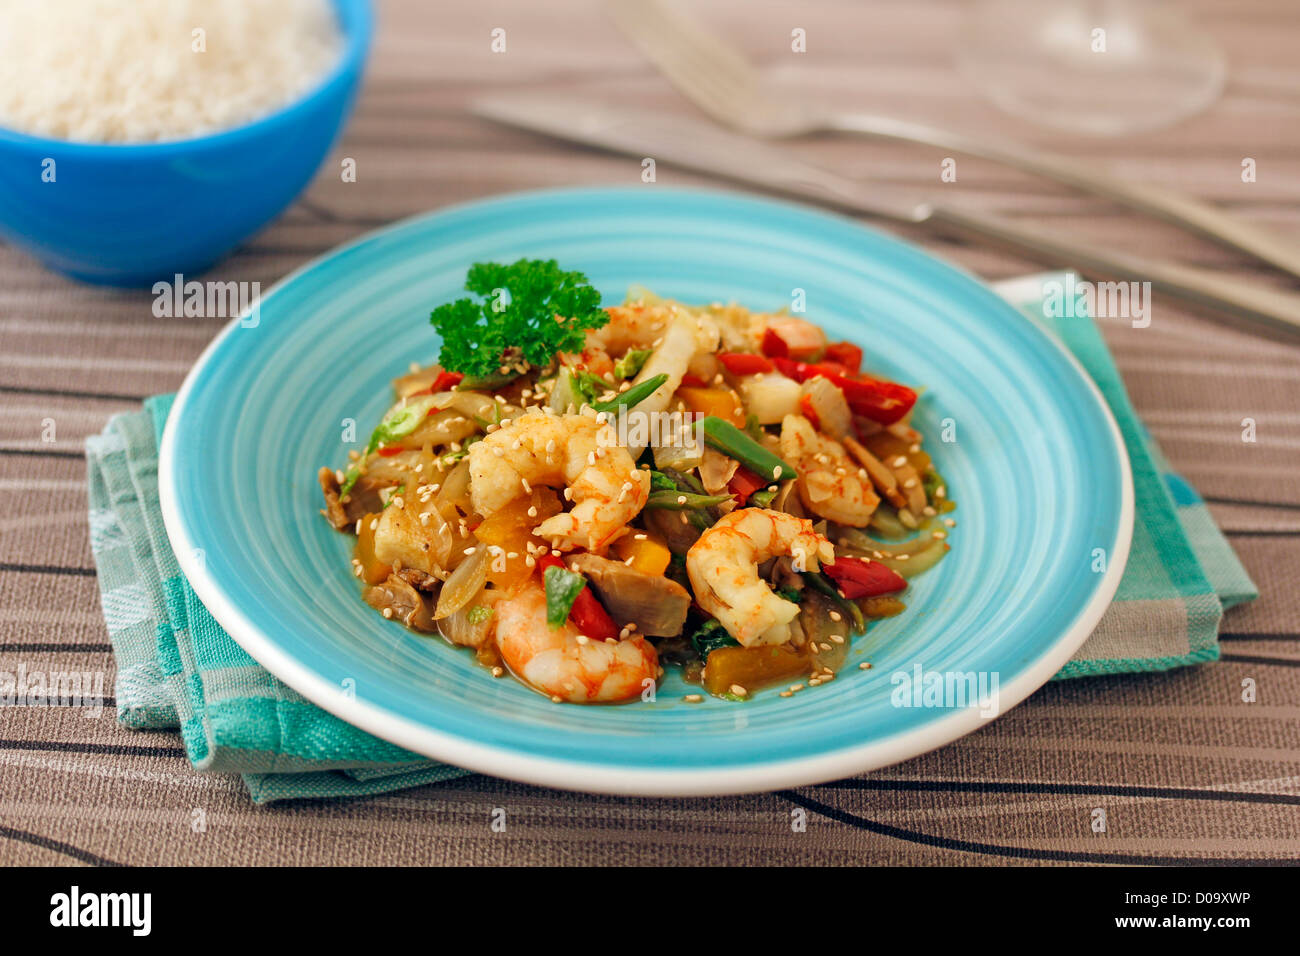 Wok China Stock Photos & Wok China Stock Images - Alamy